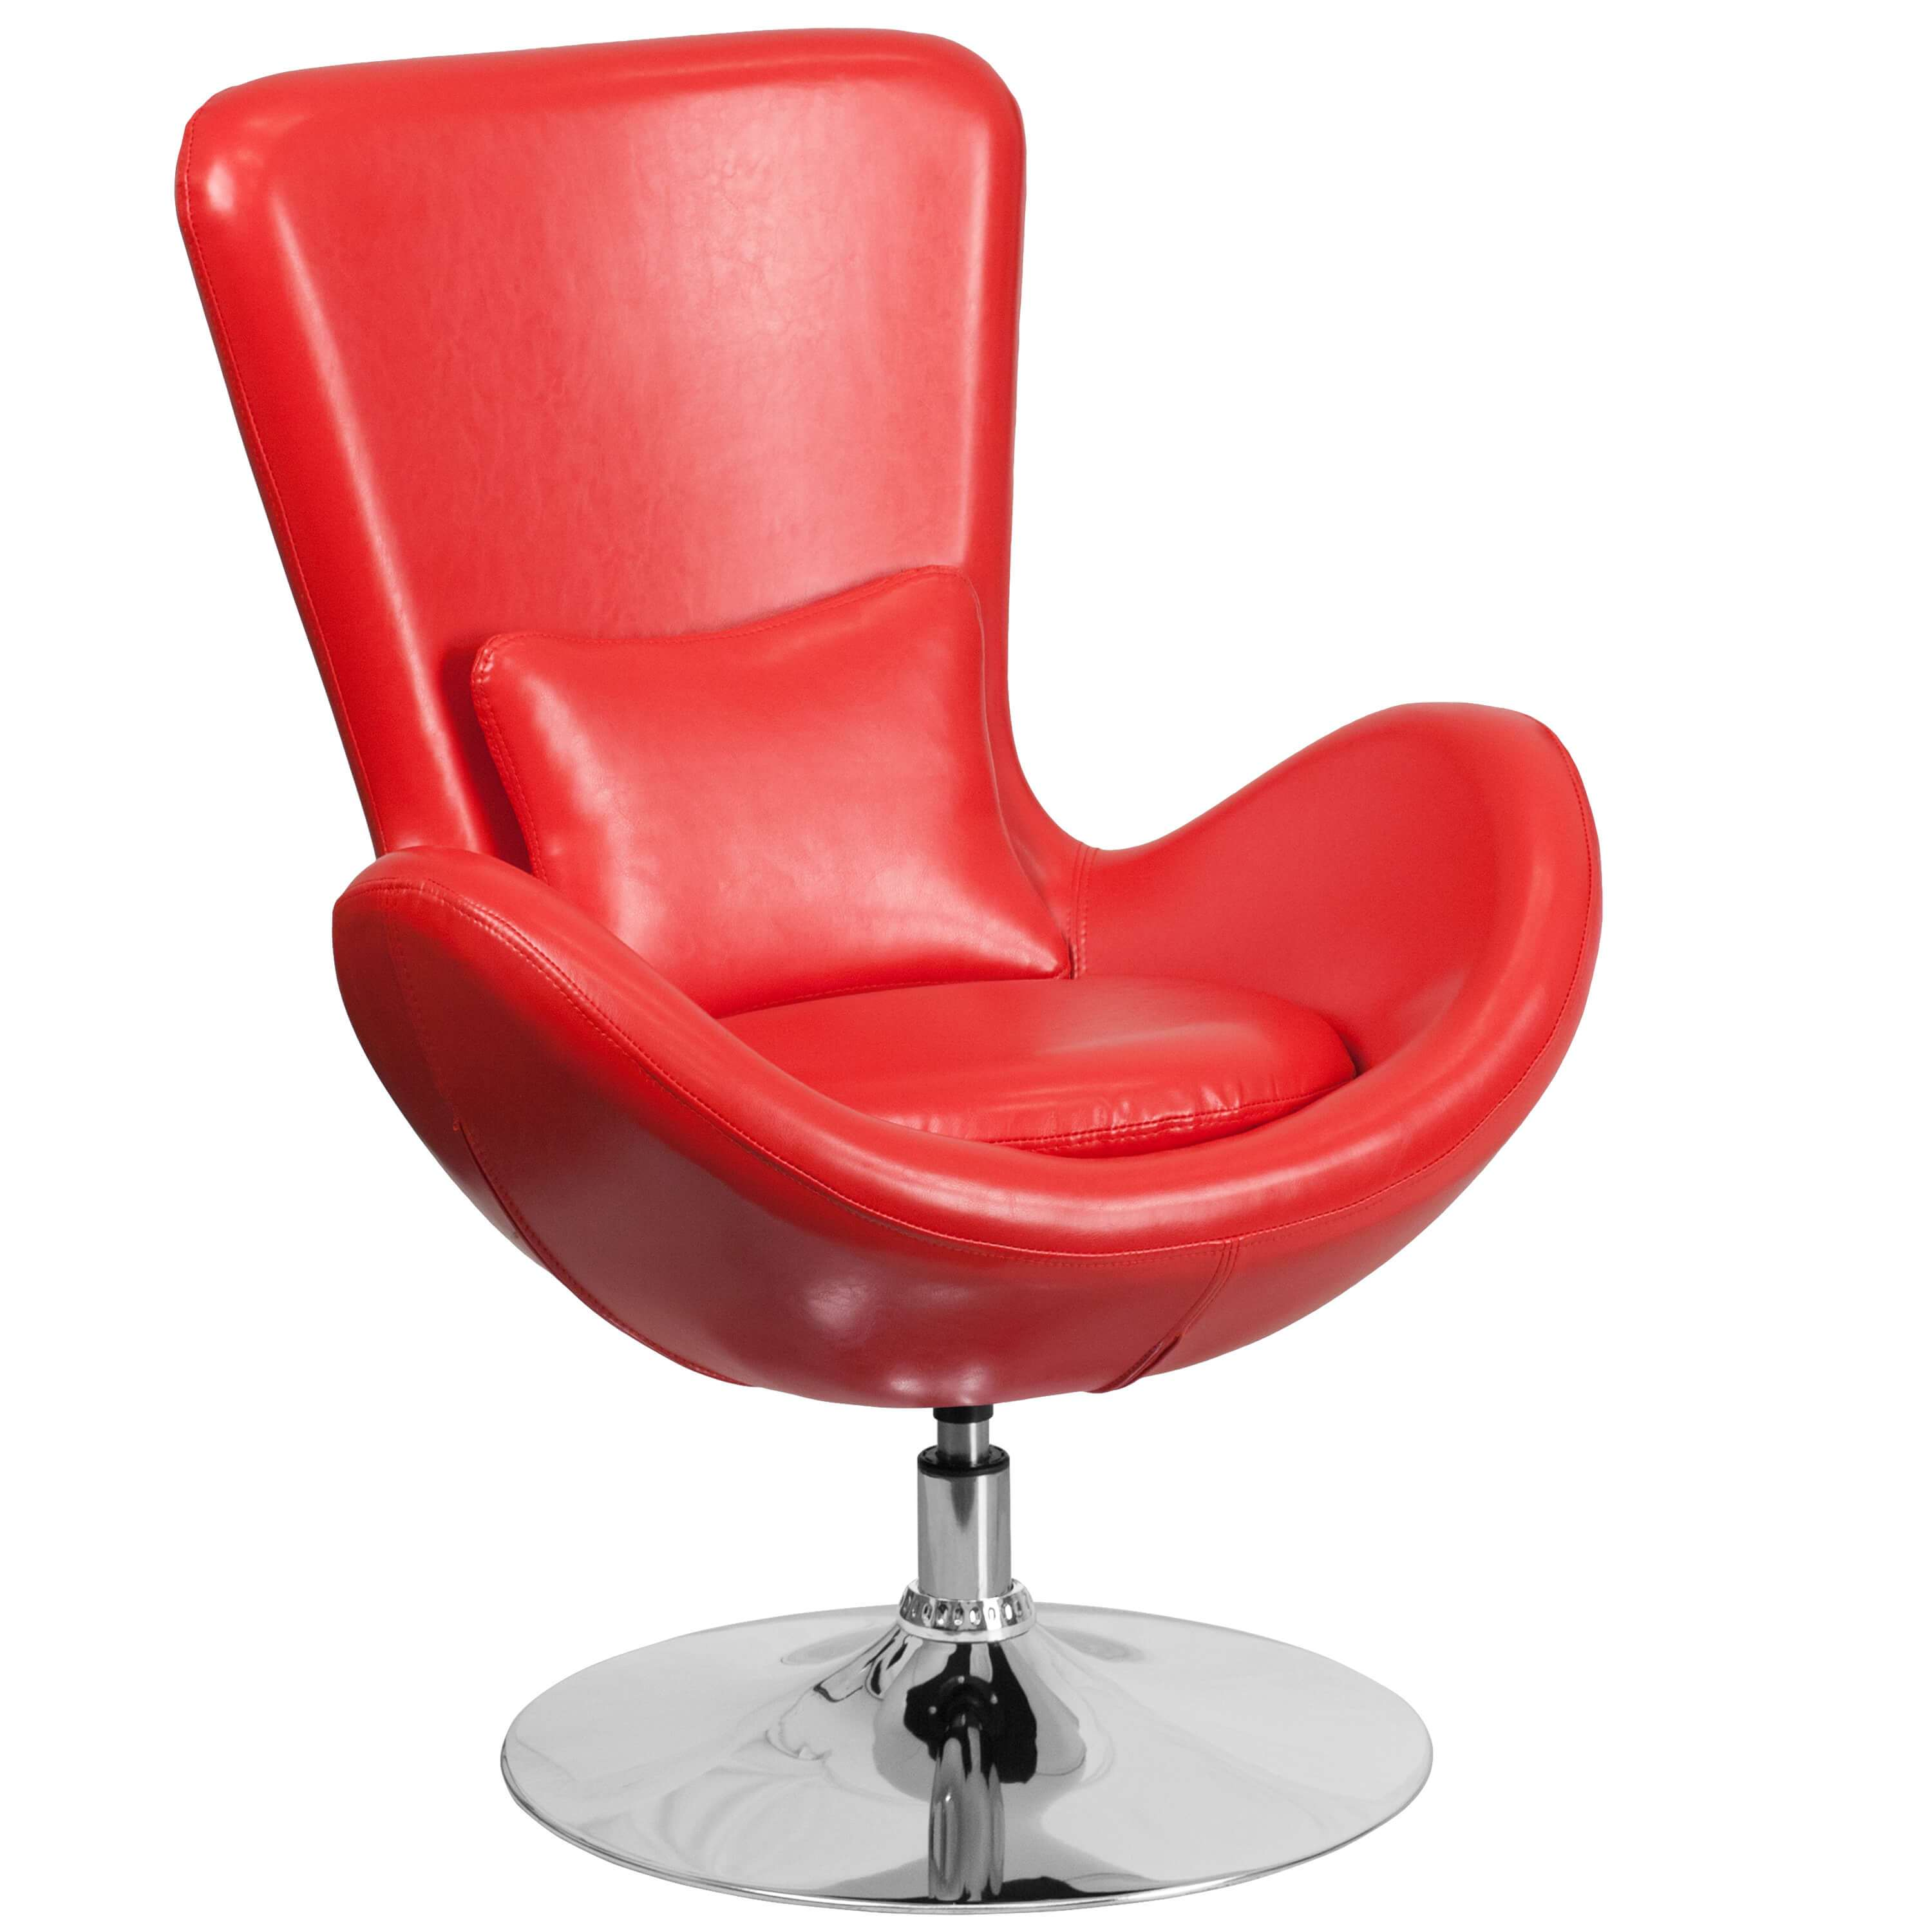 Office lounge chairs CUB CH 162430 RED LEA GG FLA